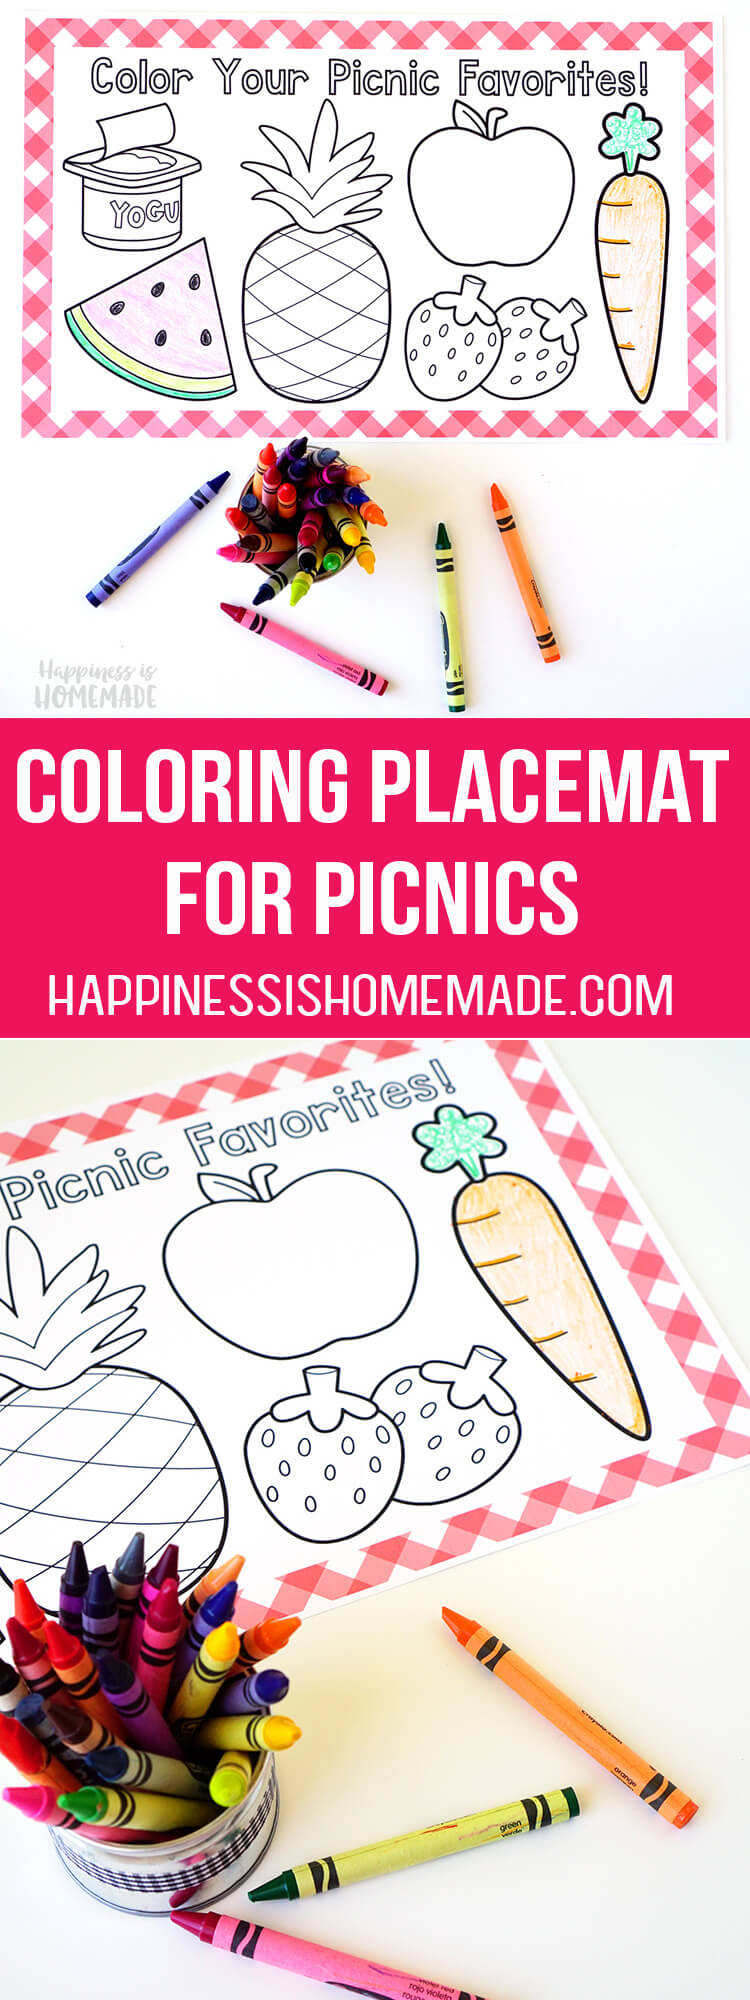 Coloring Placemat for Picnics